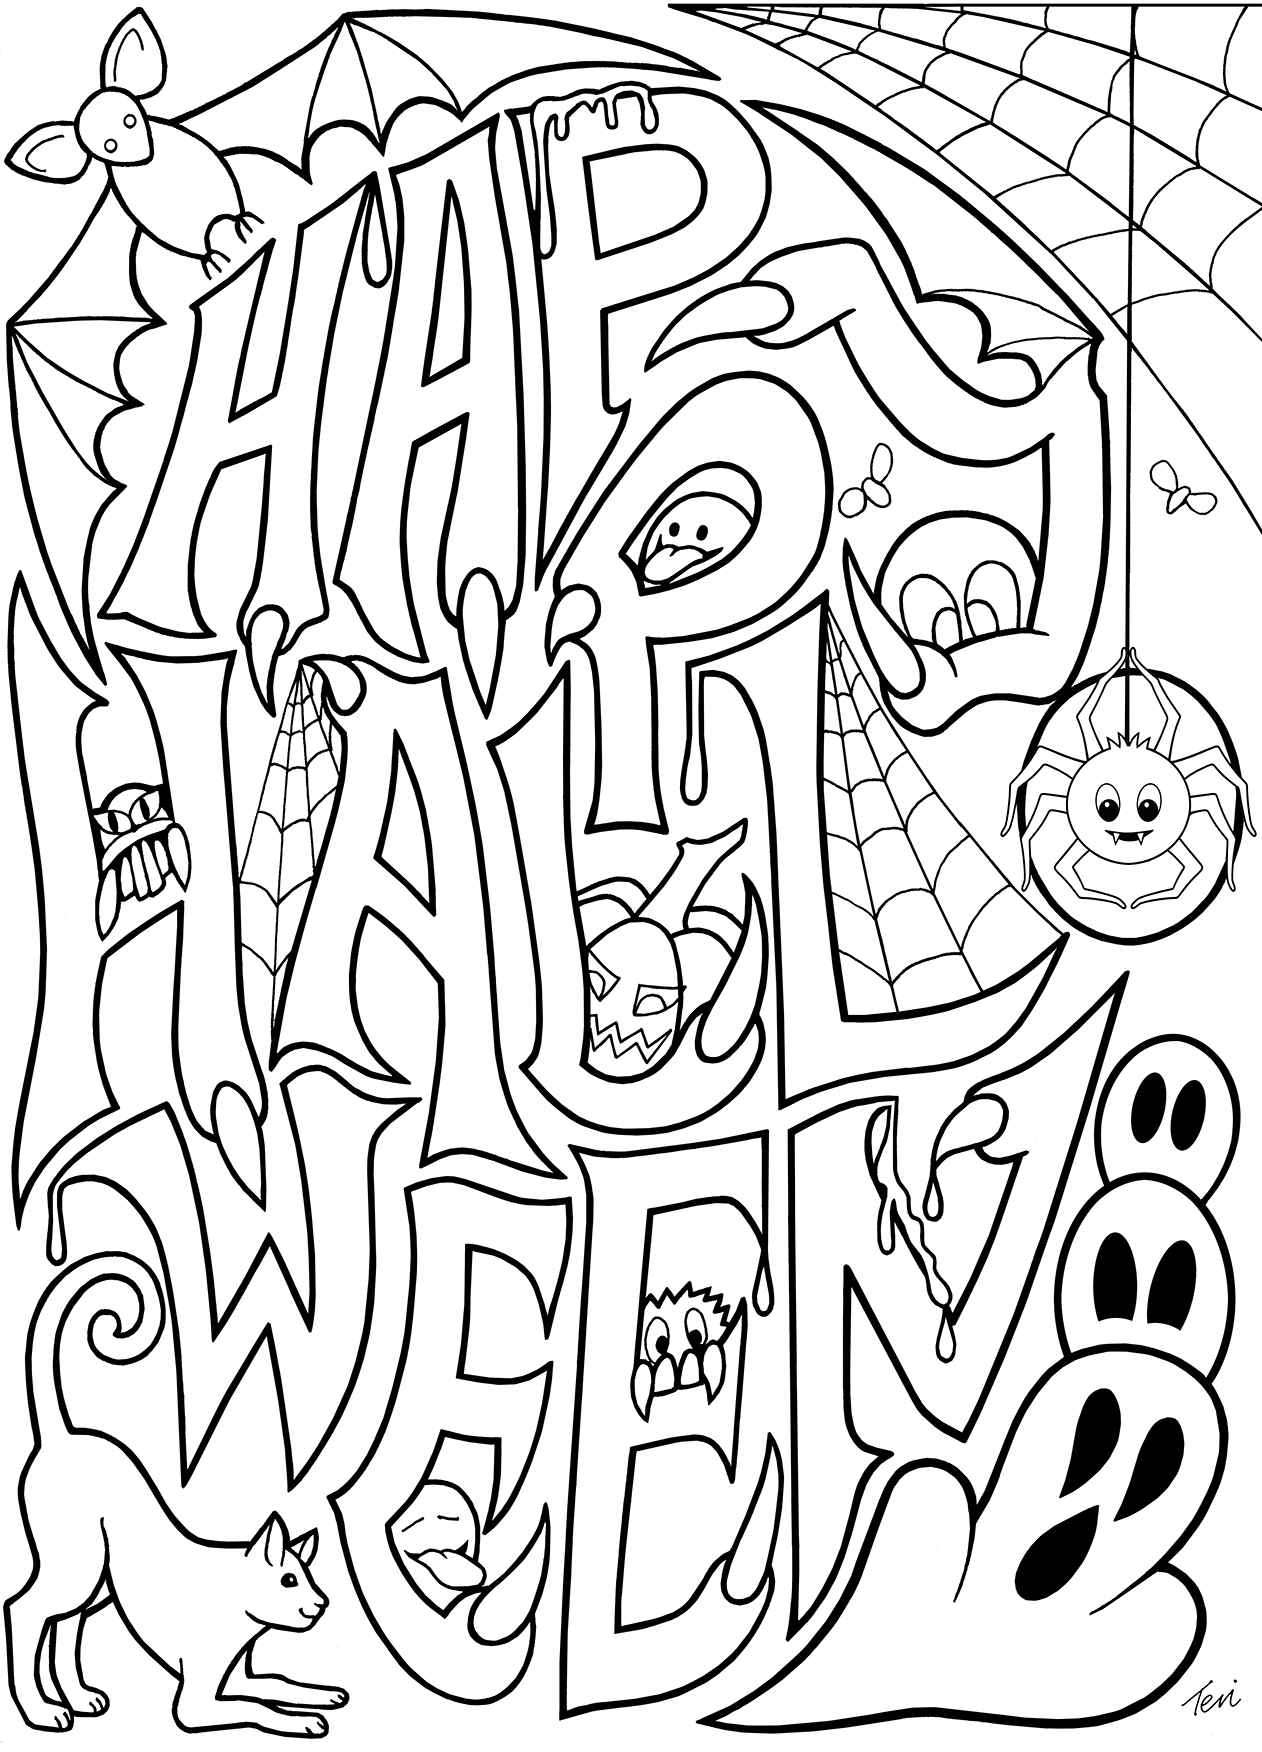 halloween for coloring halloween coloring pages halloween skeleton coloring for halloween coloring